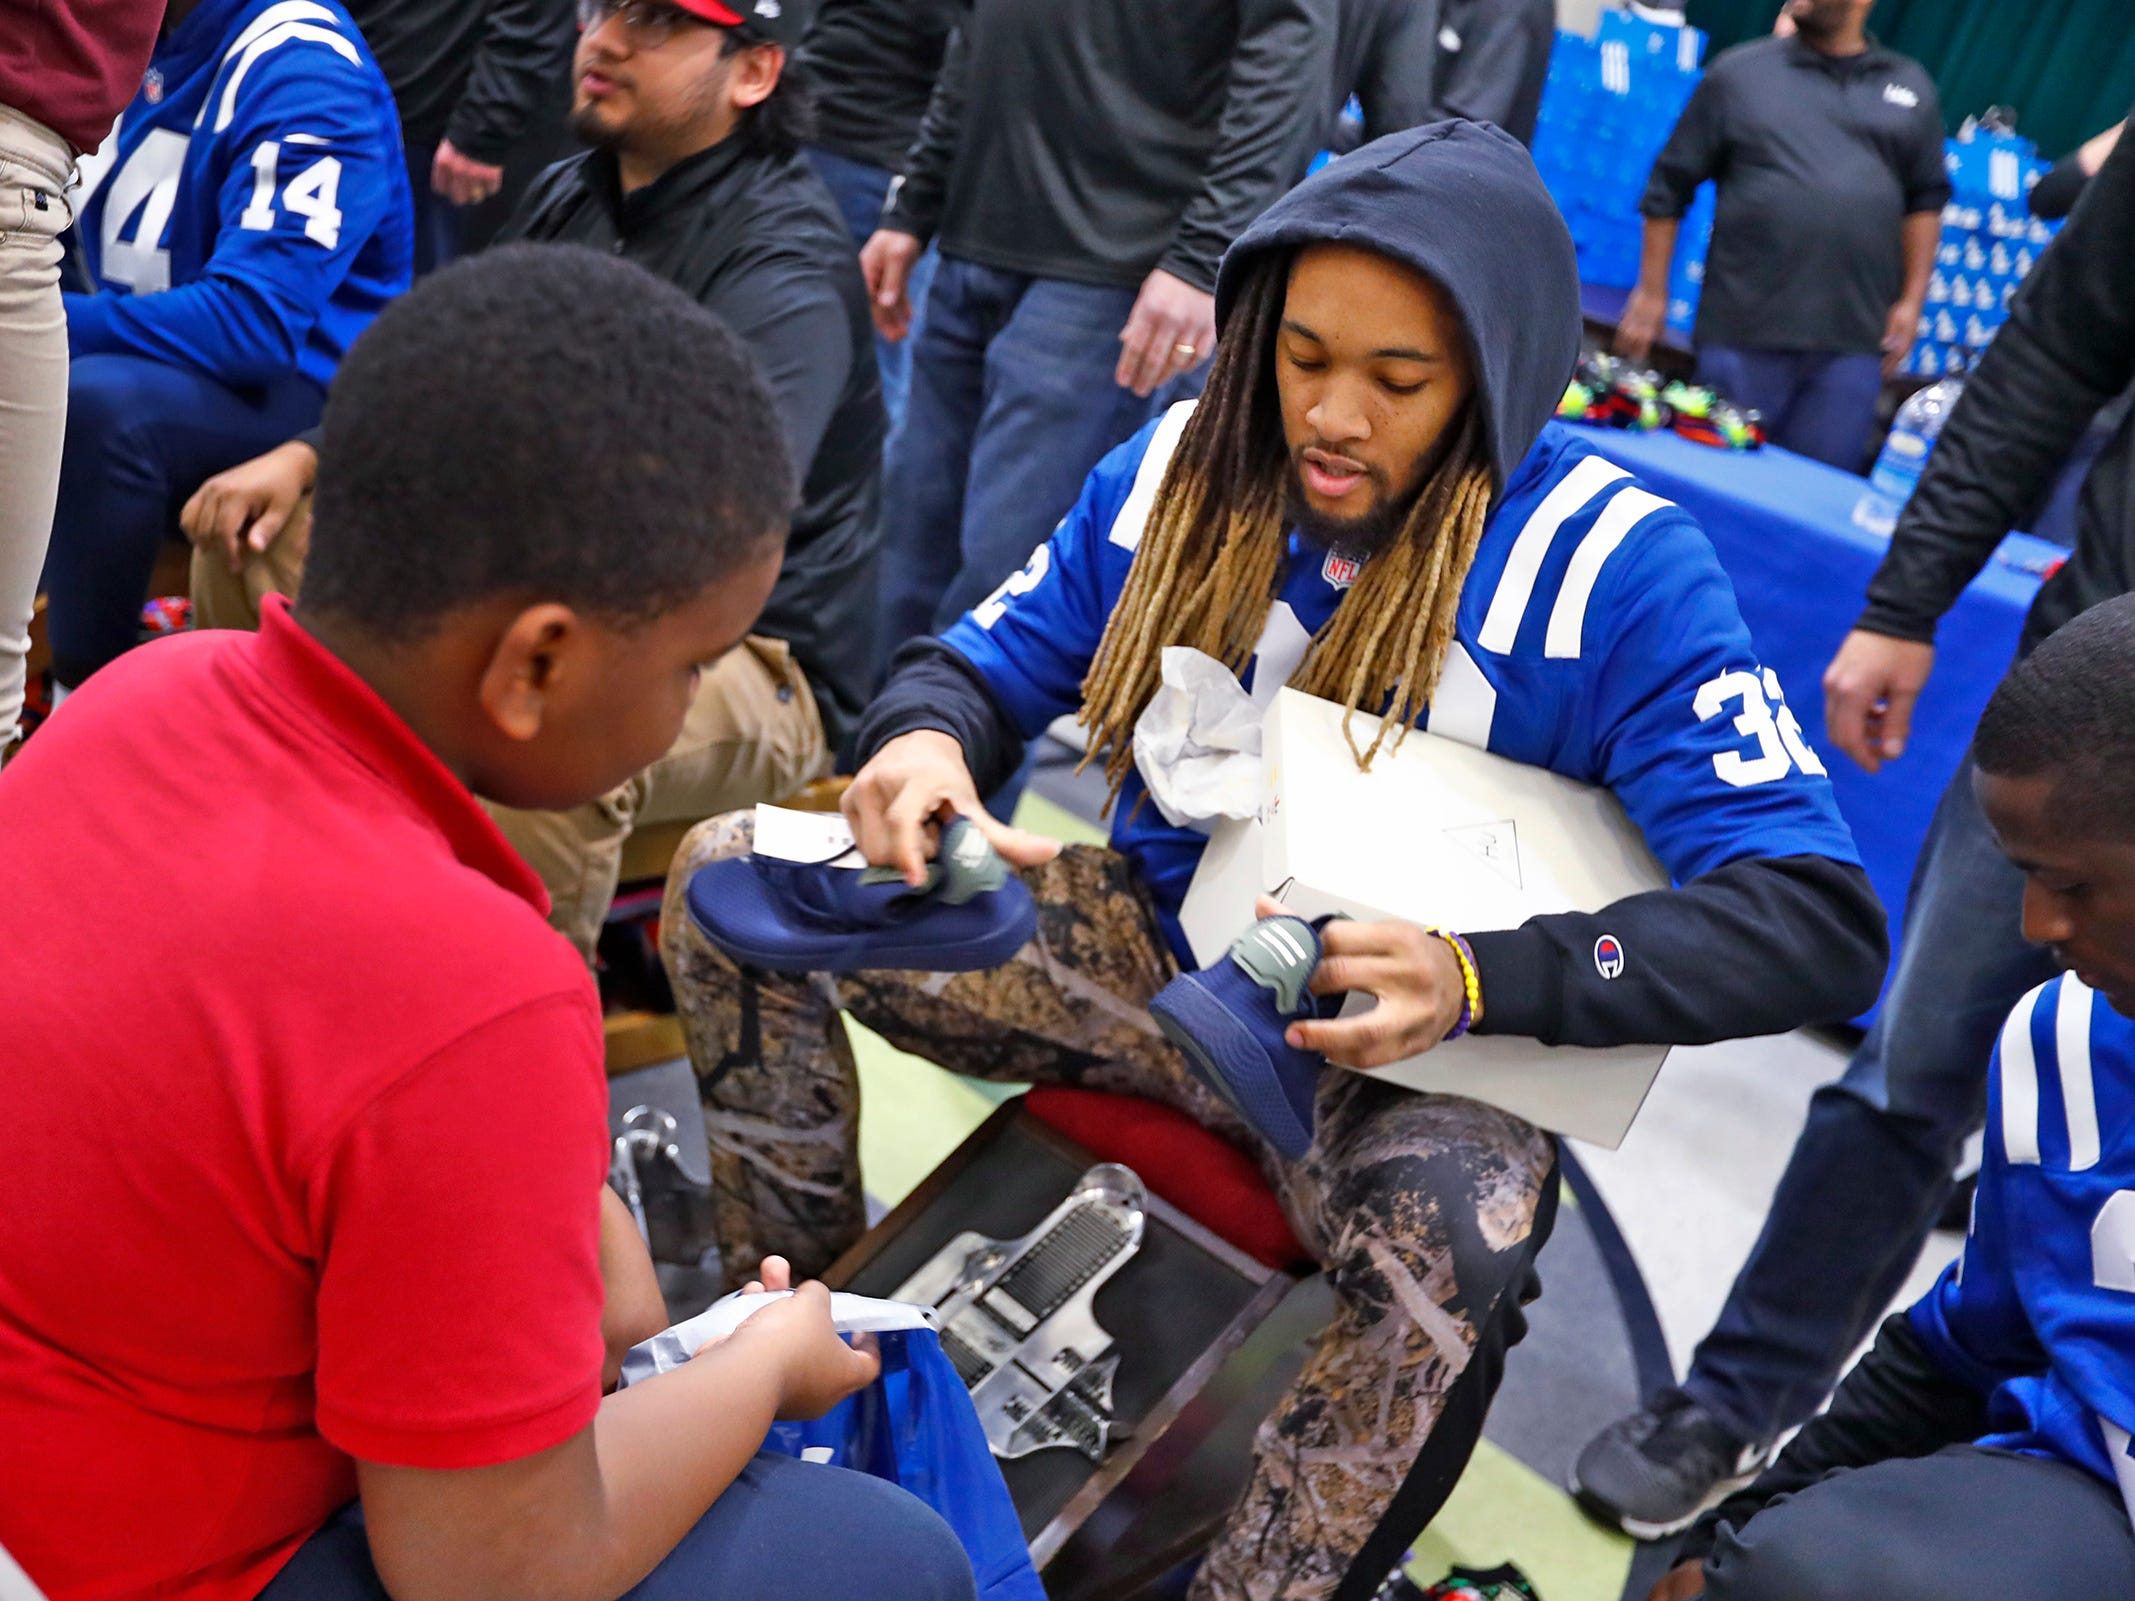 Indianapolis Colts' Jalen Collins fits Marquise Sanders for a new pair of shoes at Brookside School 54, Monday, Dec. 3, 2018.  Colts players and staff joined as LIDS Sports and its parent company Genesco fit and gave new shoes, socks, hats, and snacks to students as part of the 13th annual Cold Feet, Warm Shoes event.